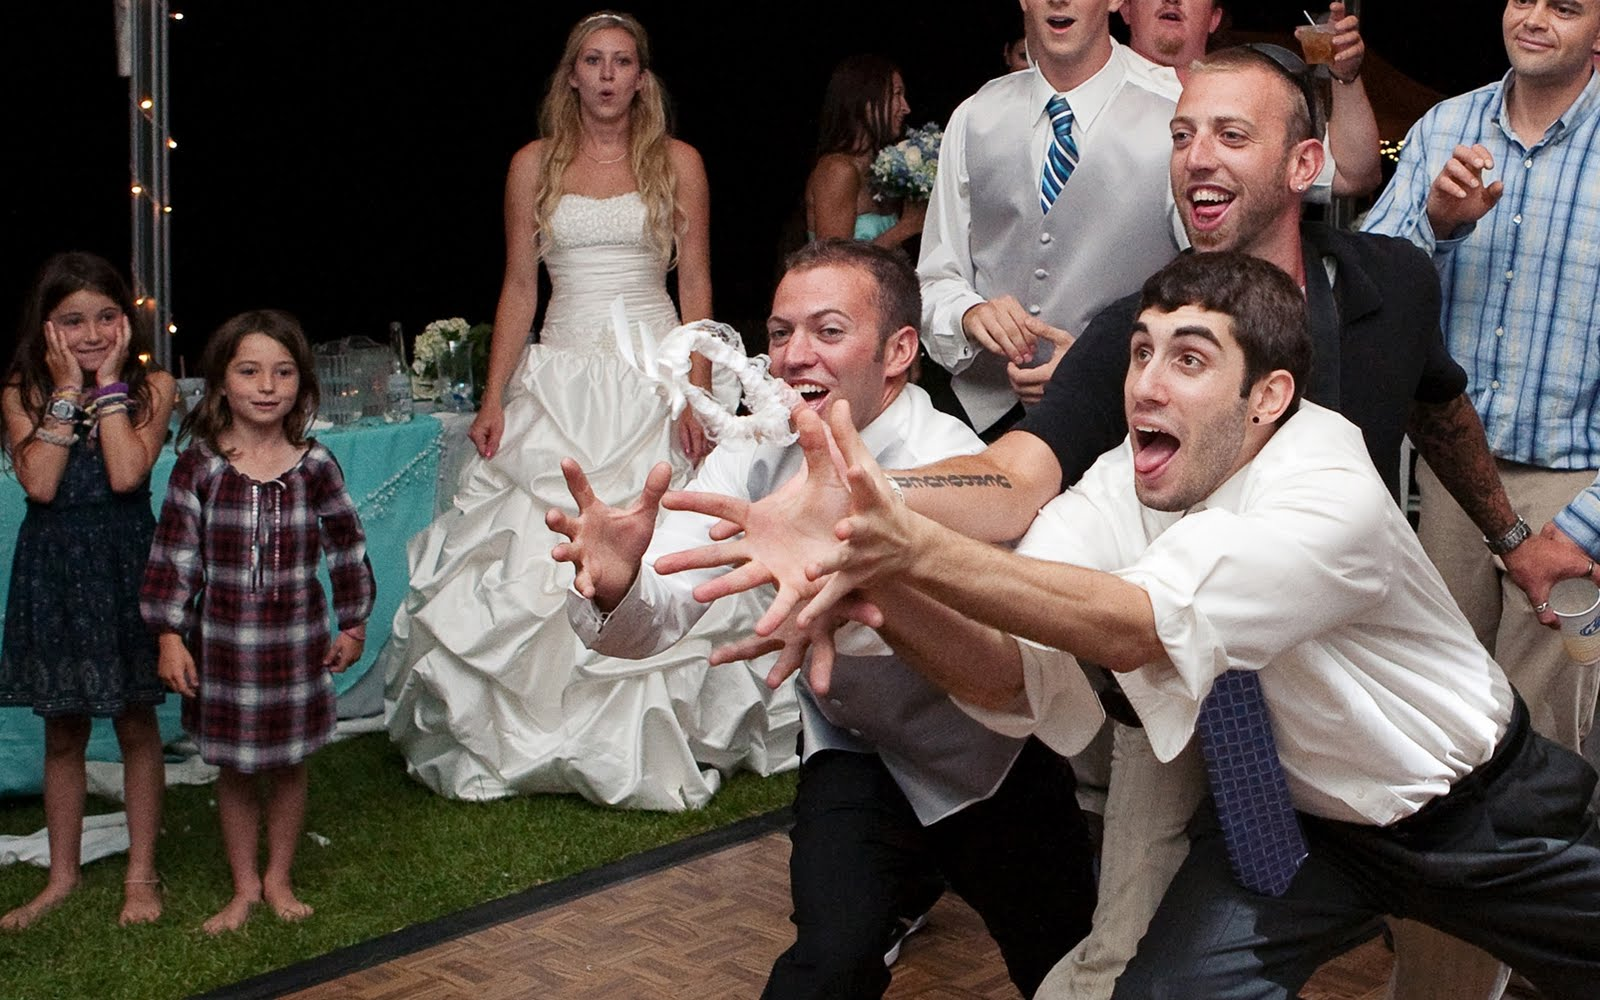 Tossing The Garter At Your Wedding Should Be A Fun Moment For Everyone Here Is List Of Popular Songs To Play During Toss Get Guest In